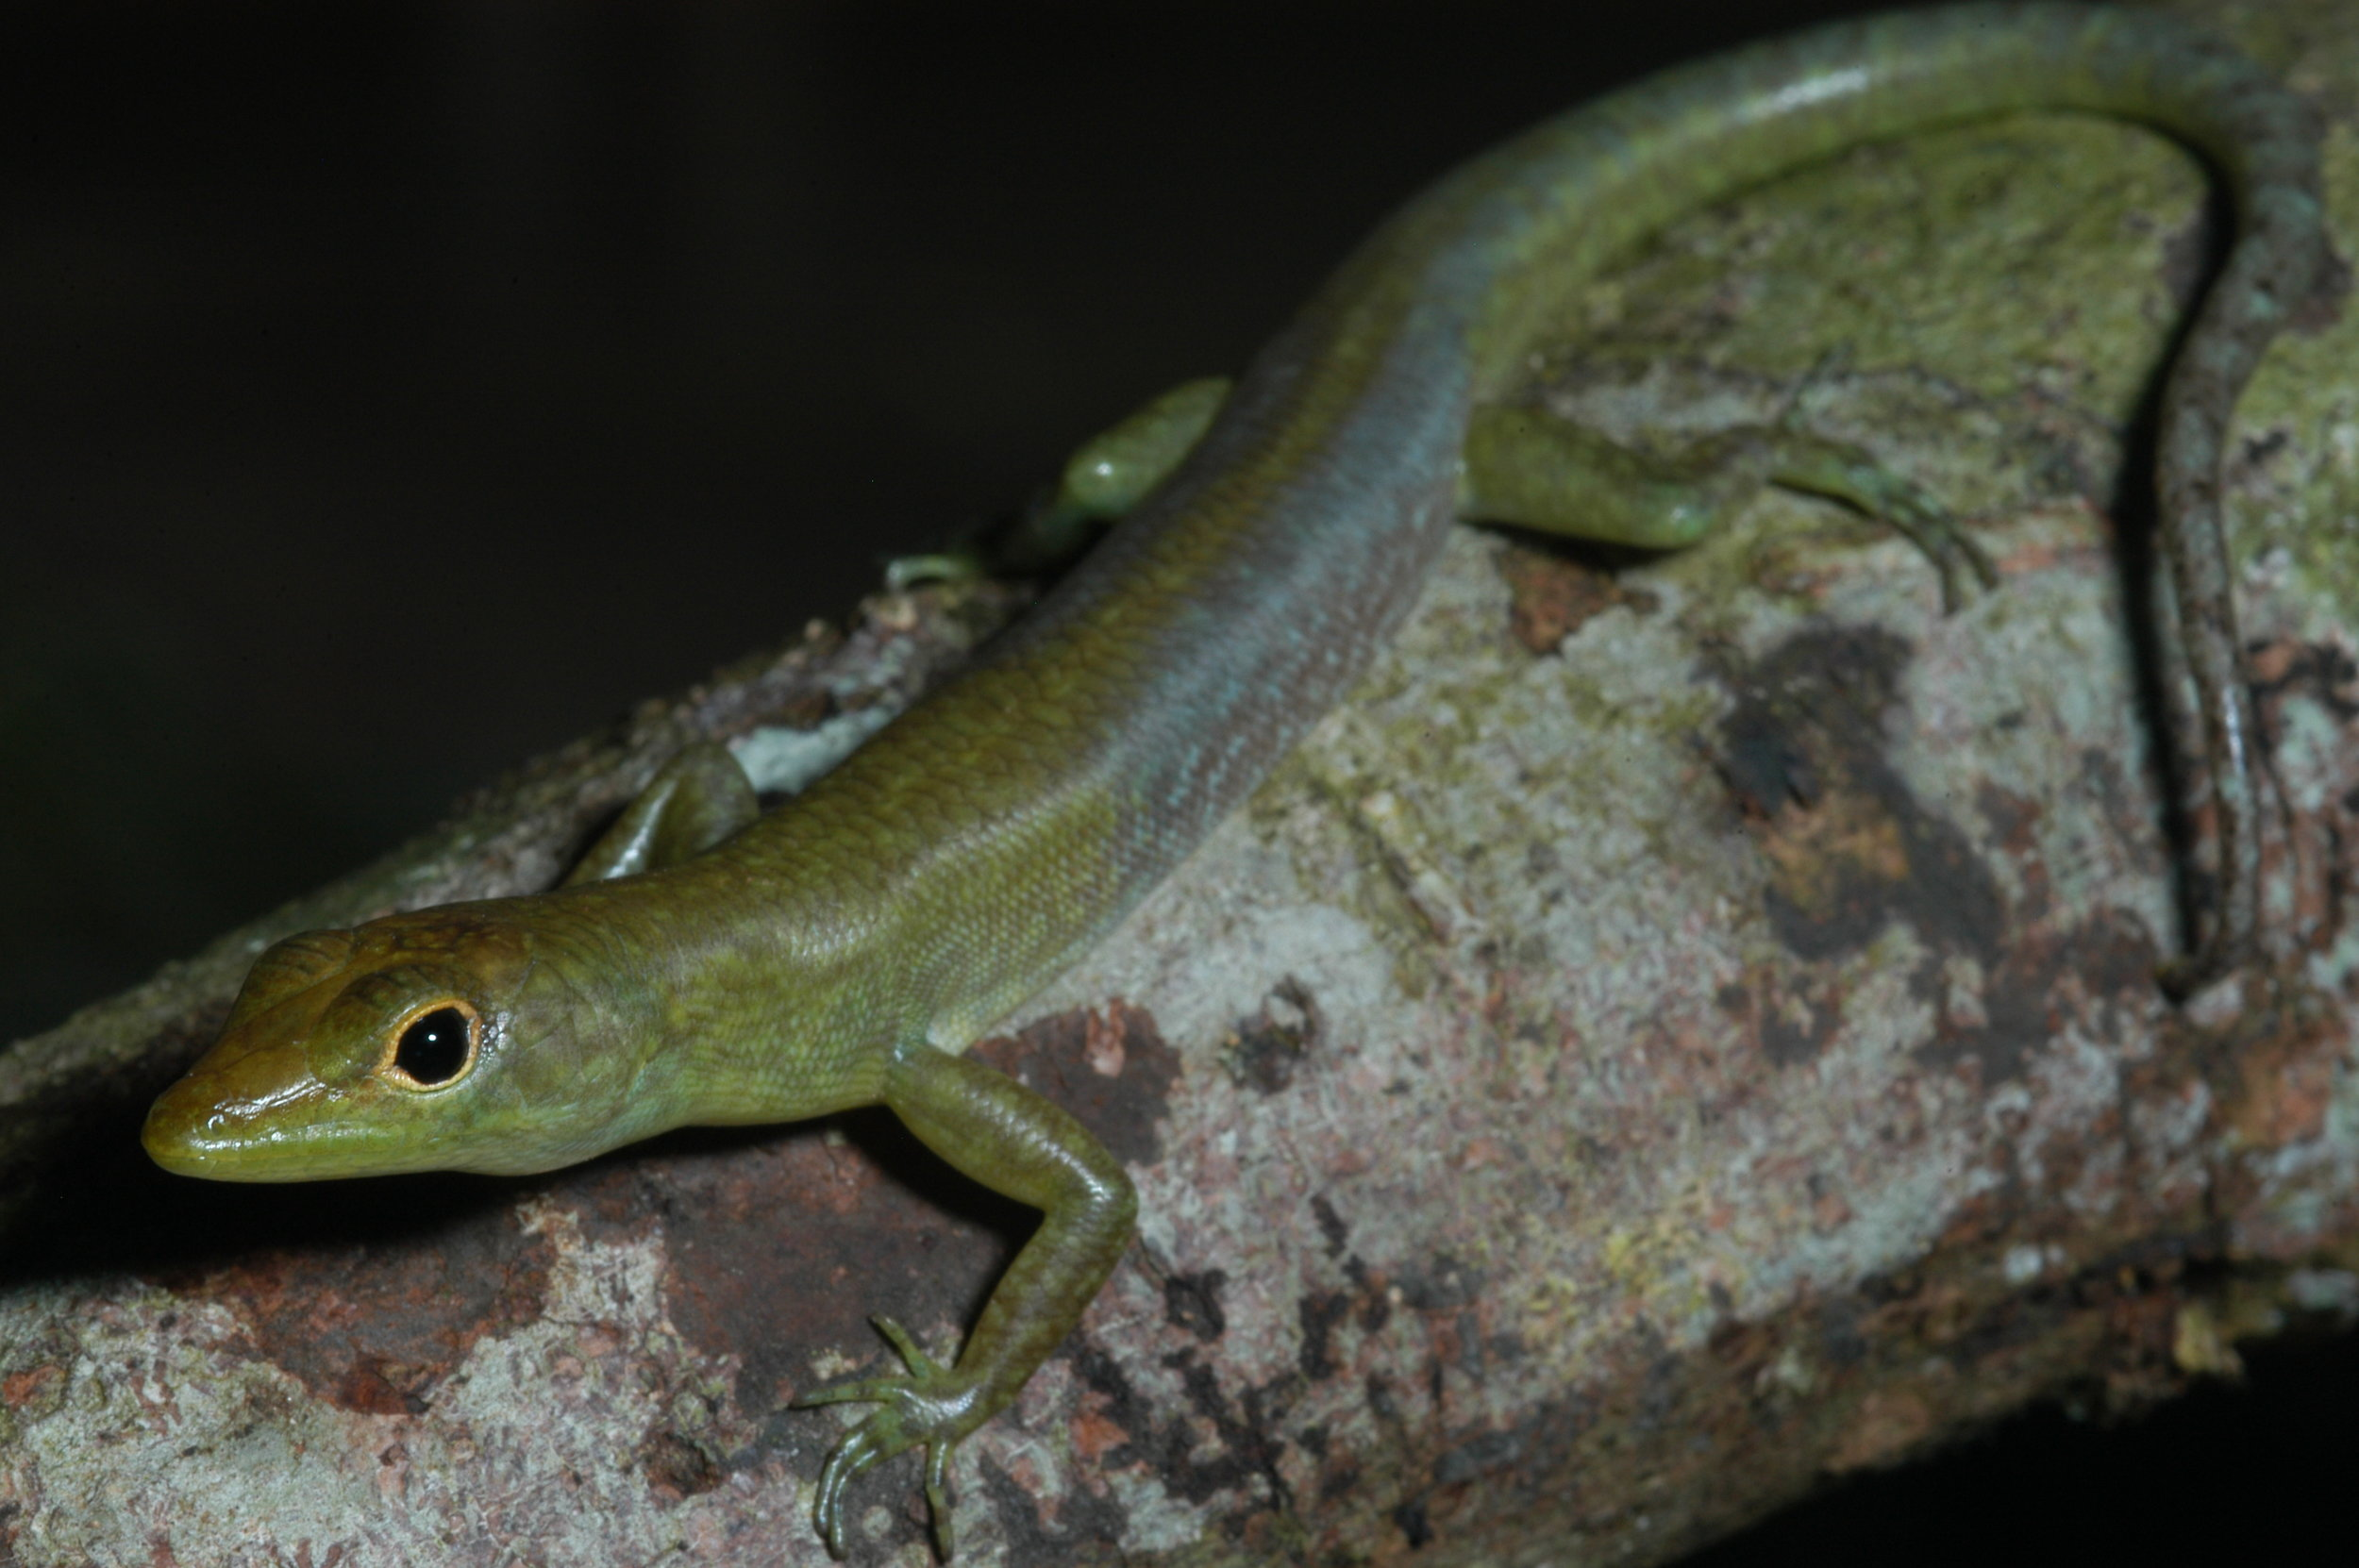 Prasinohaema virens, another green blooded lizard from the lowlands of Papua New Guinea. This is the only species that lays eggs, all other green blooded species give birth to live young. This individual is an adult male characterized by the blue side patch coloration. Photo by Chris Austin.